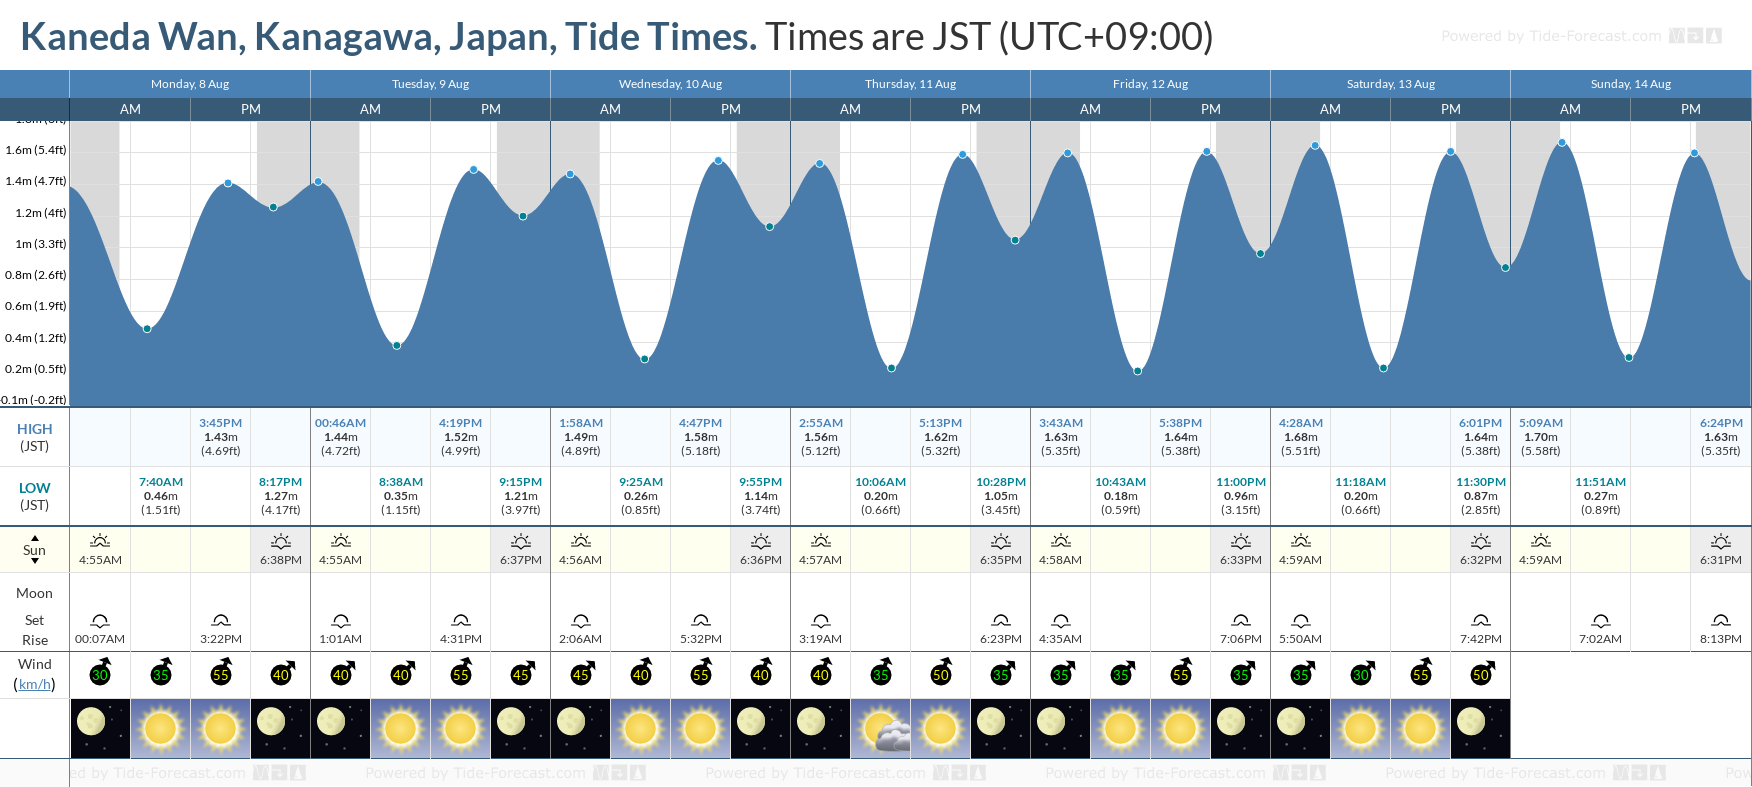 Kaneda Wan, Kanagawa, Japan Tide Chart including high and low tide tide times for the next 7 days